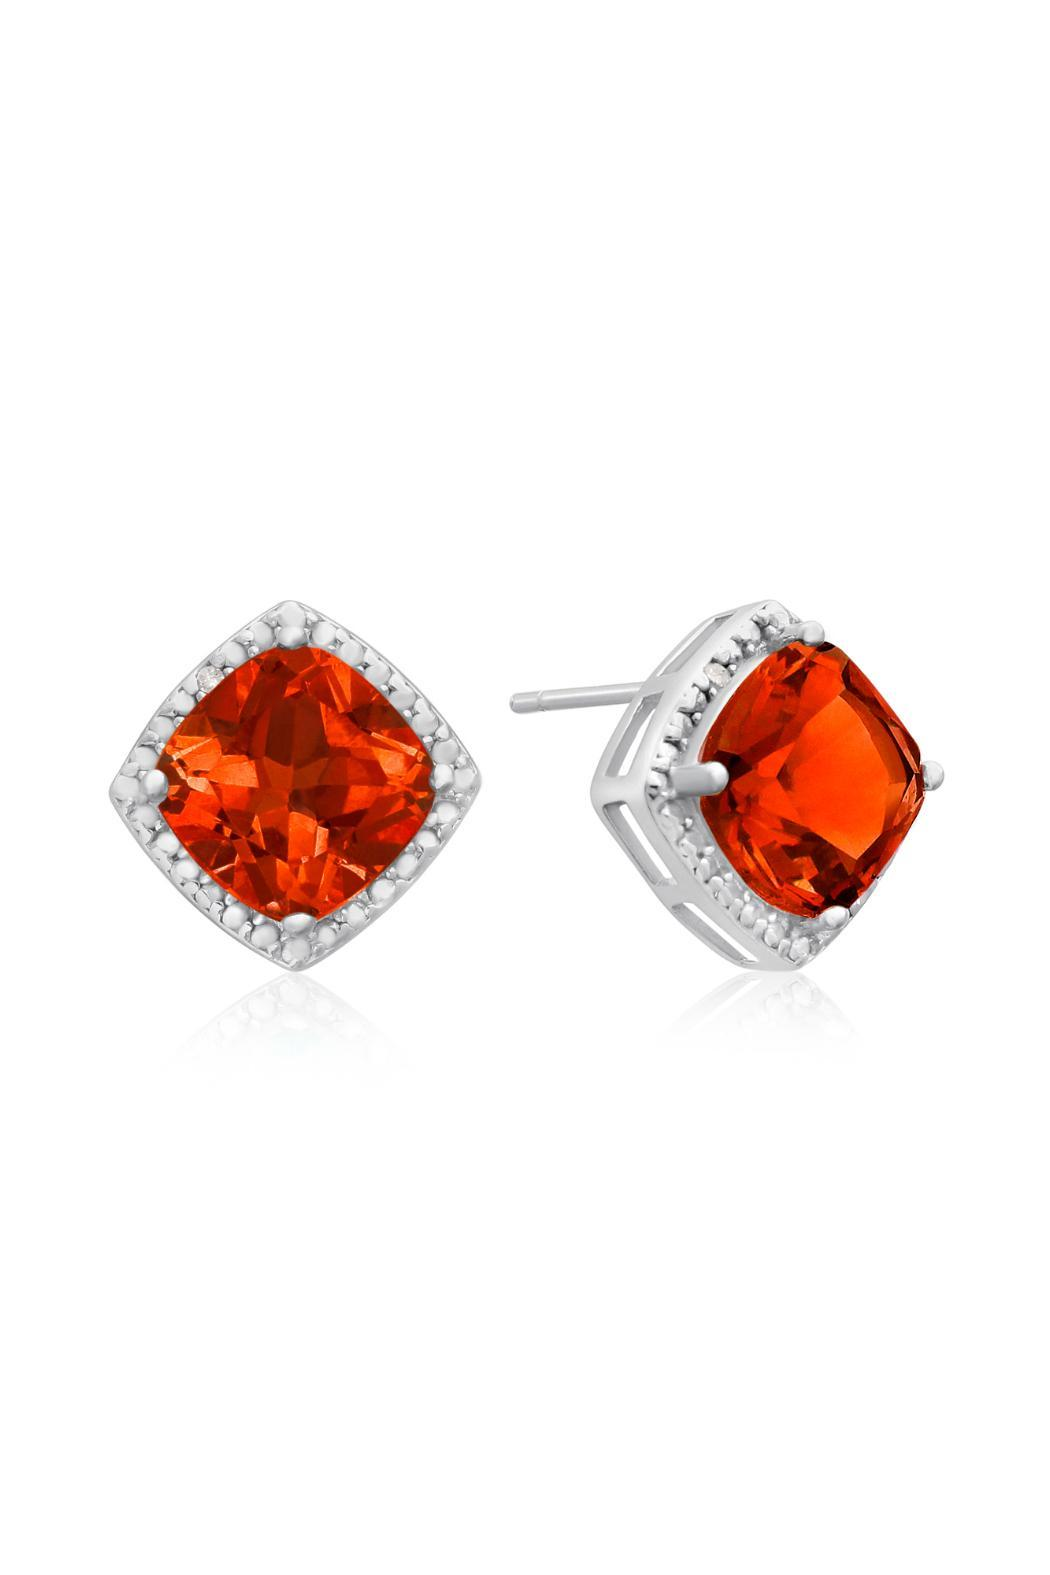 engagement gold earrings dejonghe padparadscha sapphire product ring rose